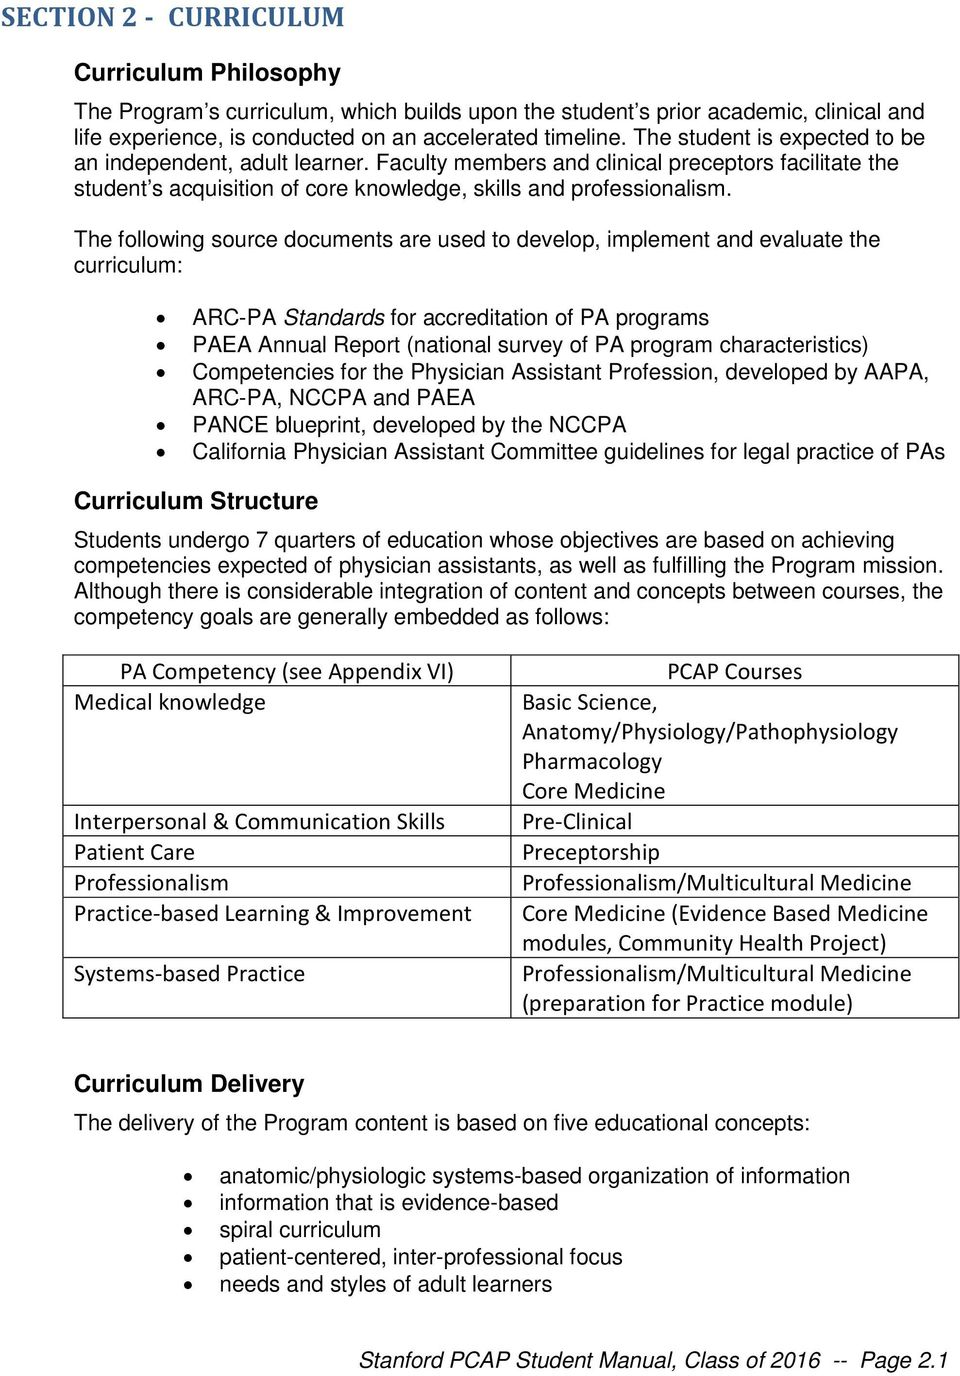 The following source documents are used to develop, implement and evaluate the curriculum: ARC-PA Standards for accreditation of PA programs PAEA Annual Report (national survey of PA program